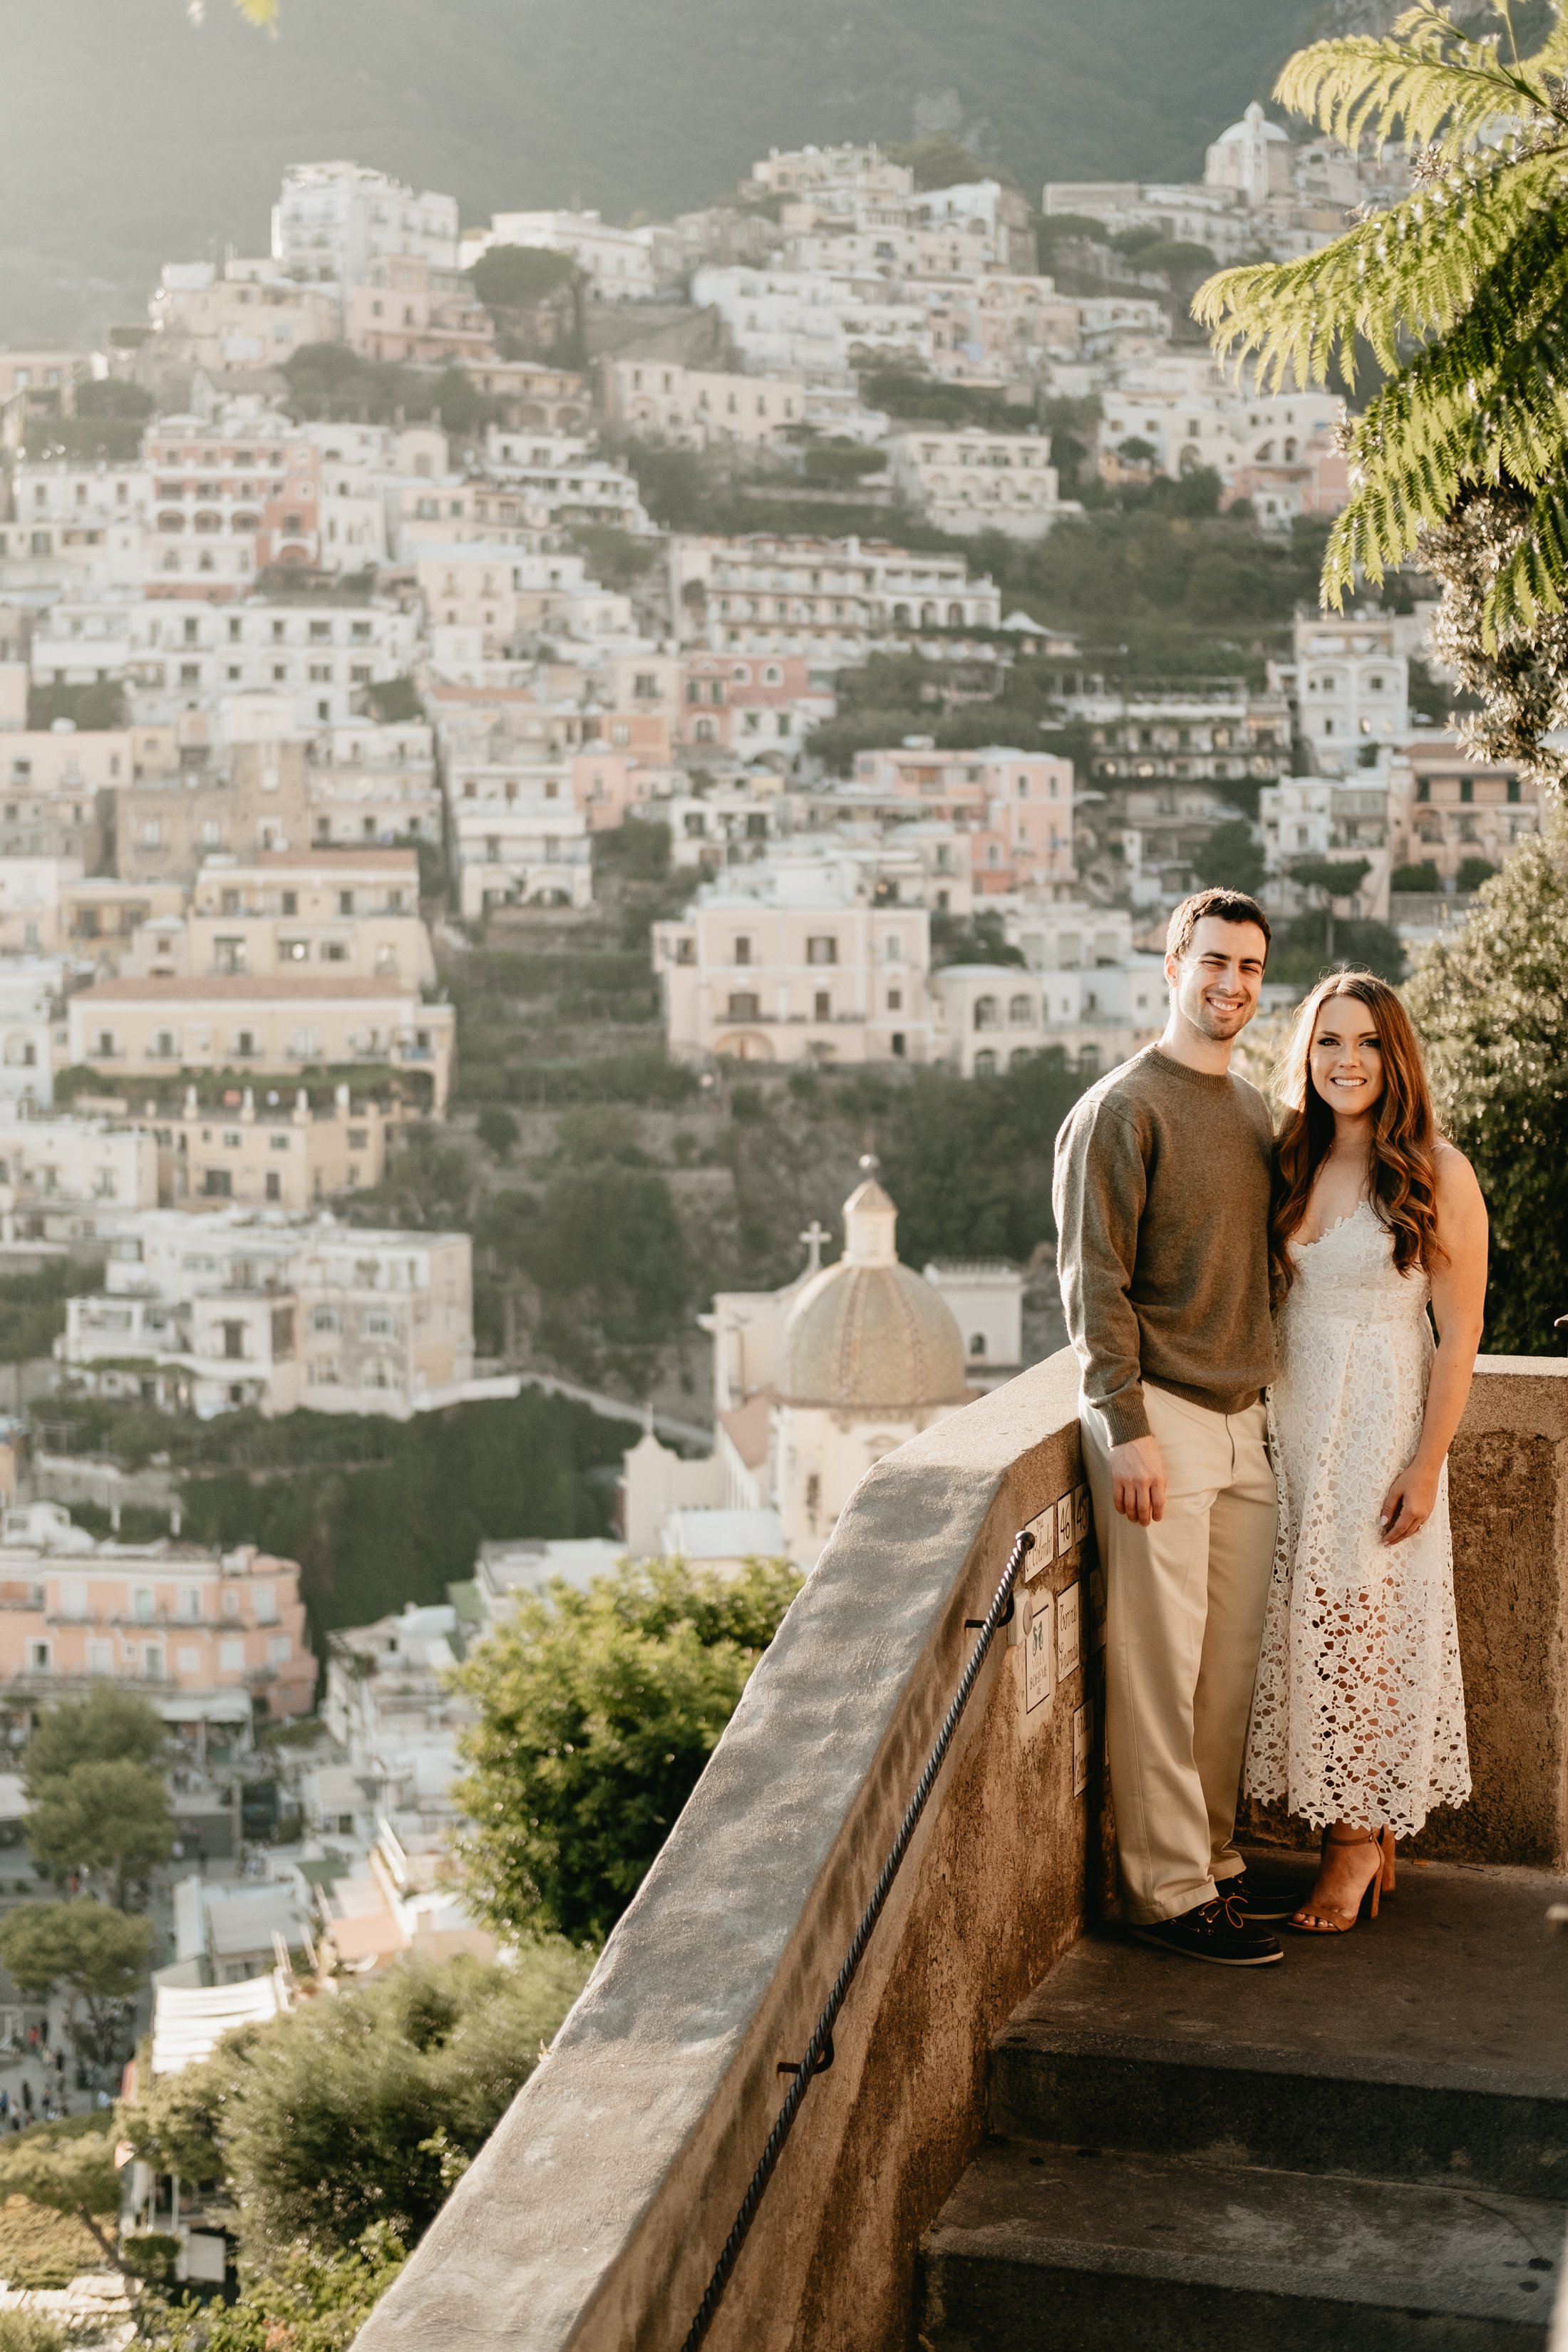 How to Plan an Epic Honeymoon - The Abroad Edition